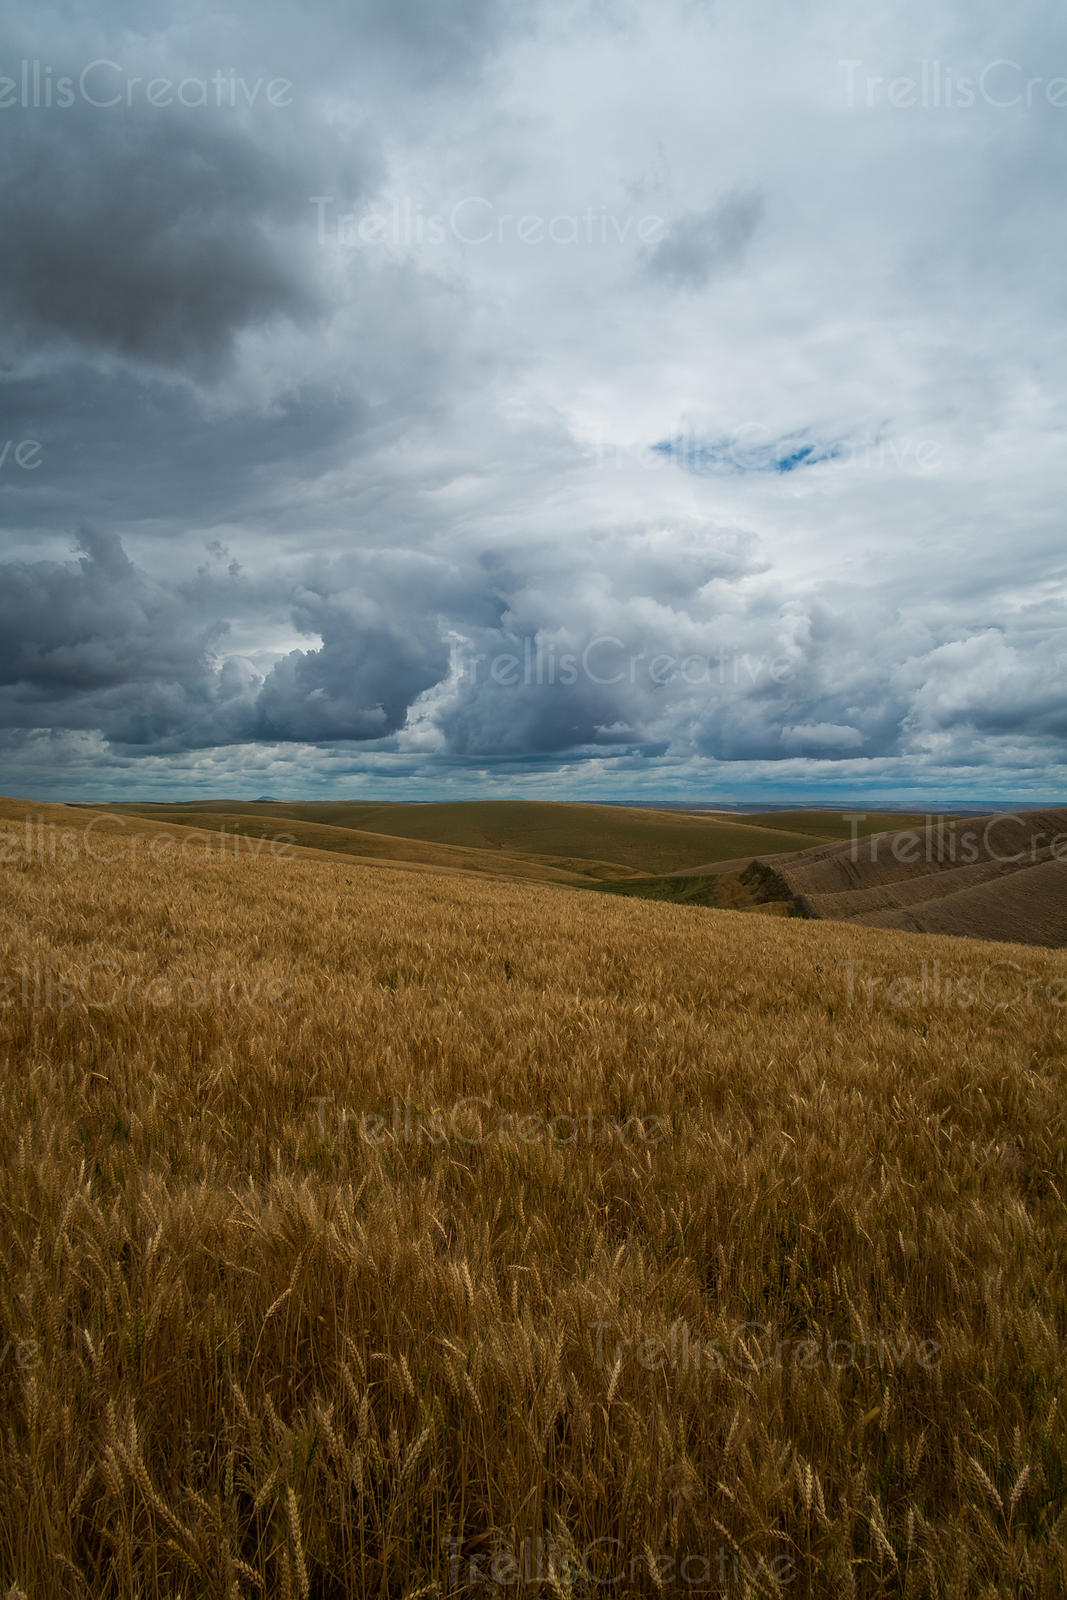 Approaching storm in Idaho wheat fields